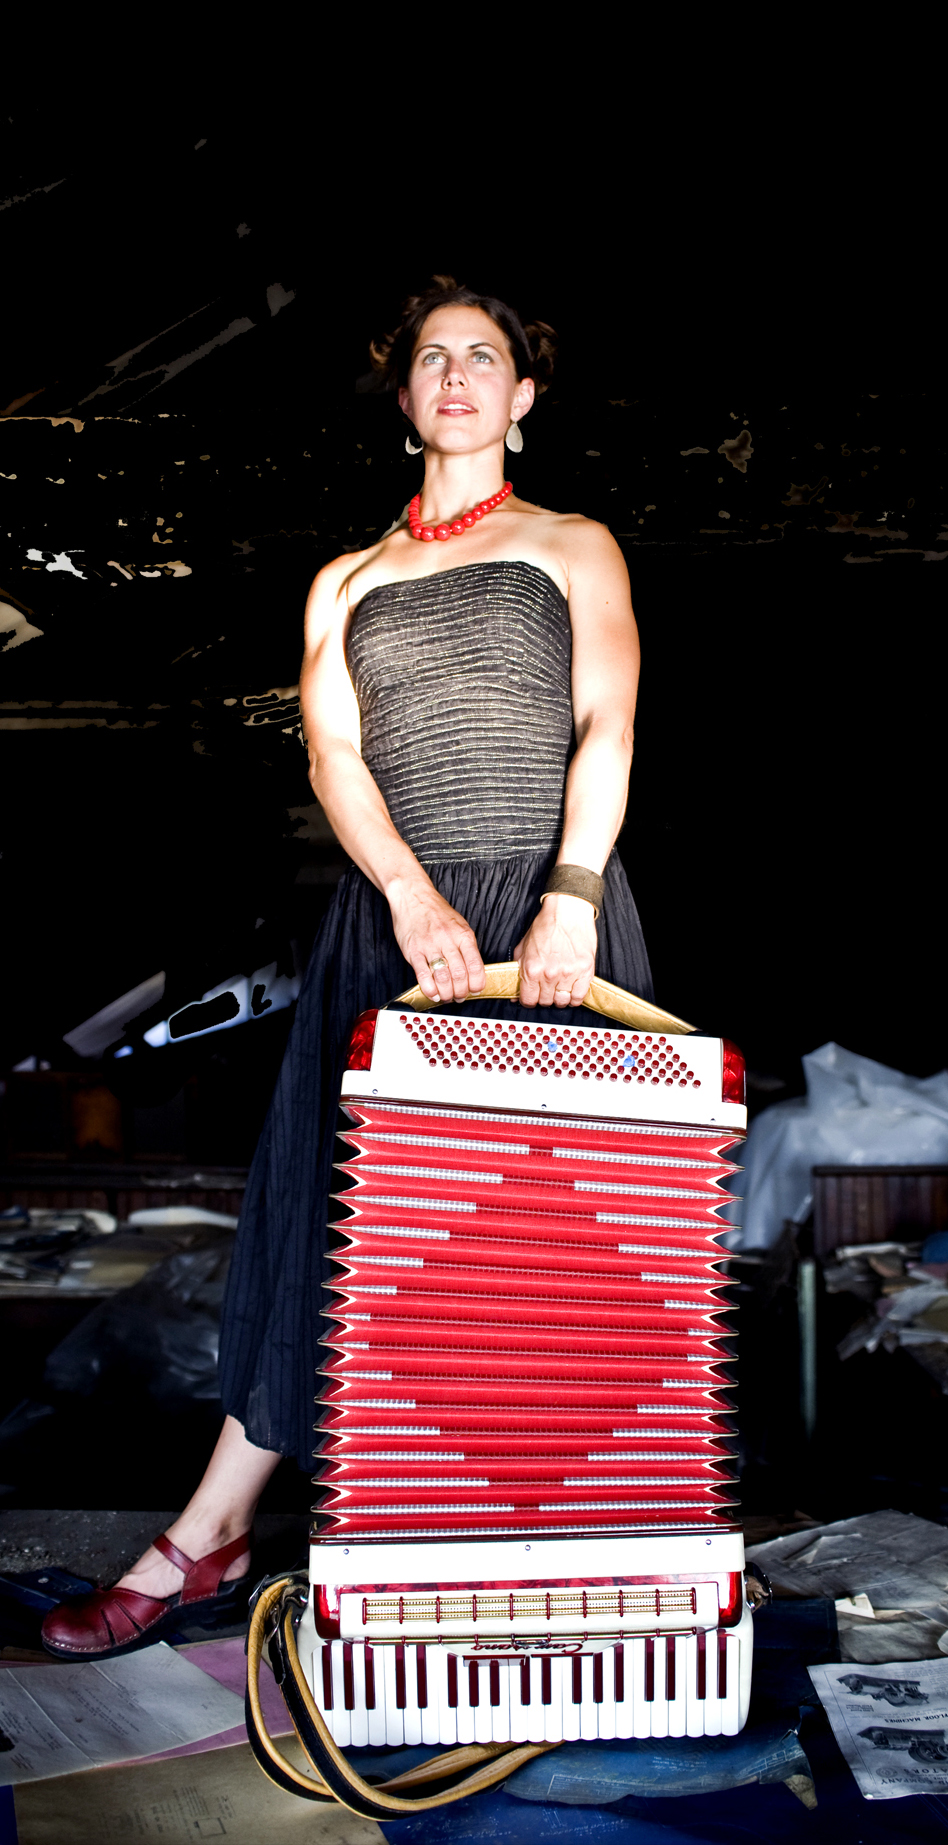 PYS Accordion sm.jpg